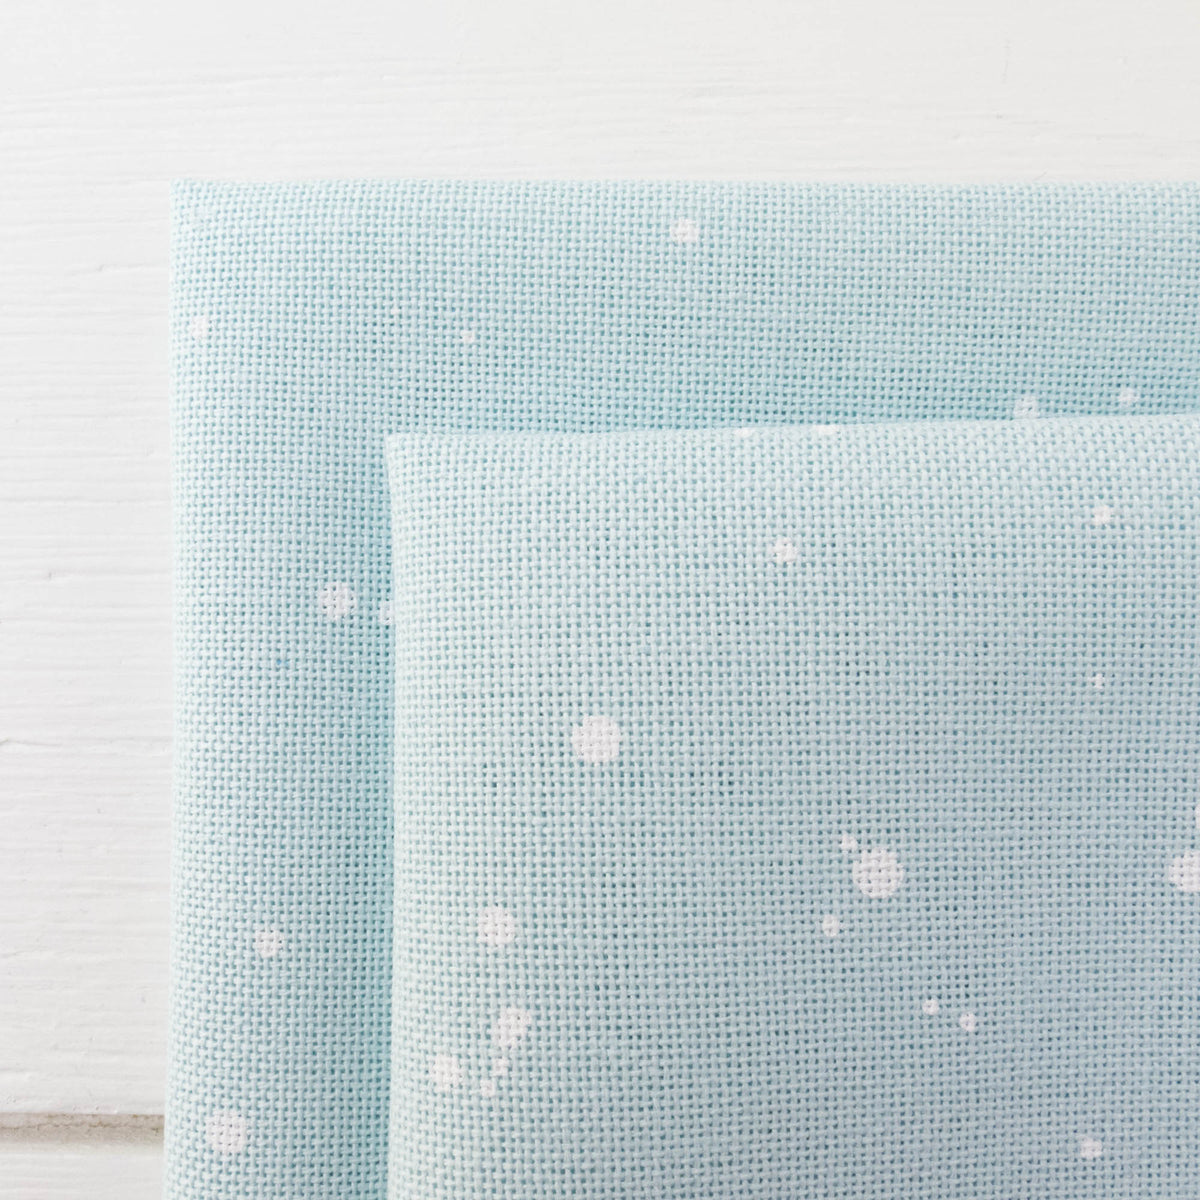 Lugana 32 ct - Mint Splash Fabric - Snuggly Monkey